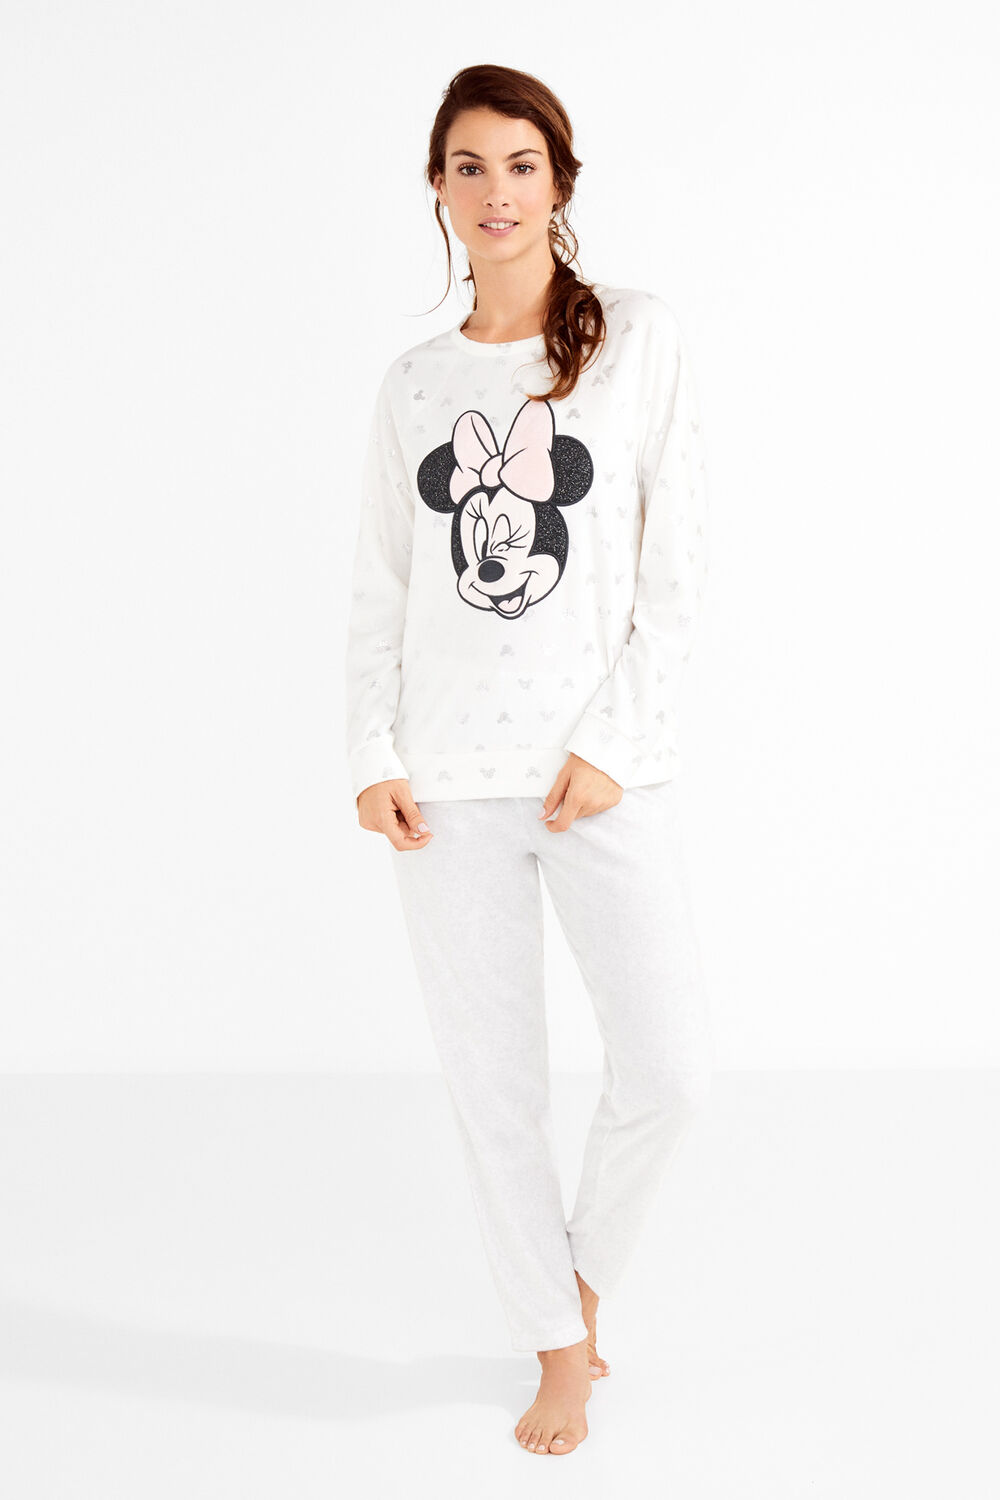 ab83783702 Womensecret Pijama largo polar Minnie estampado